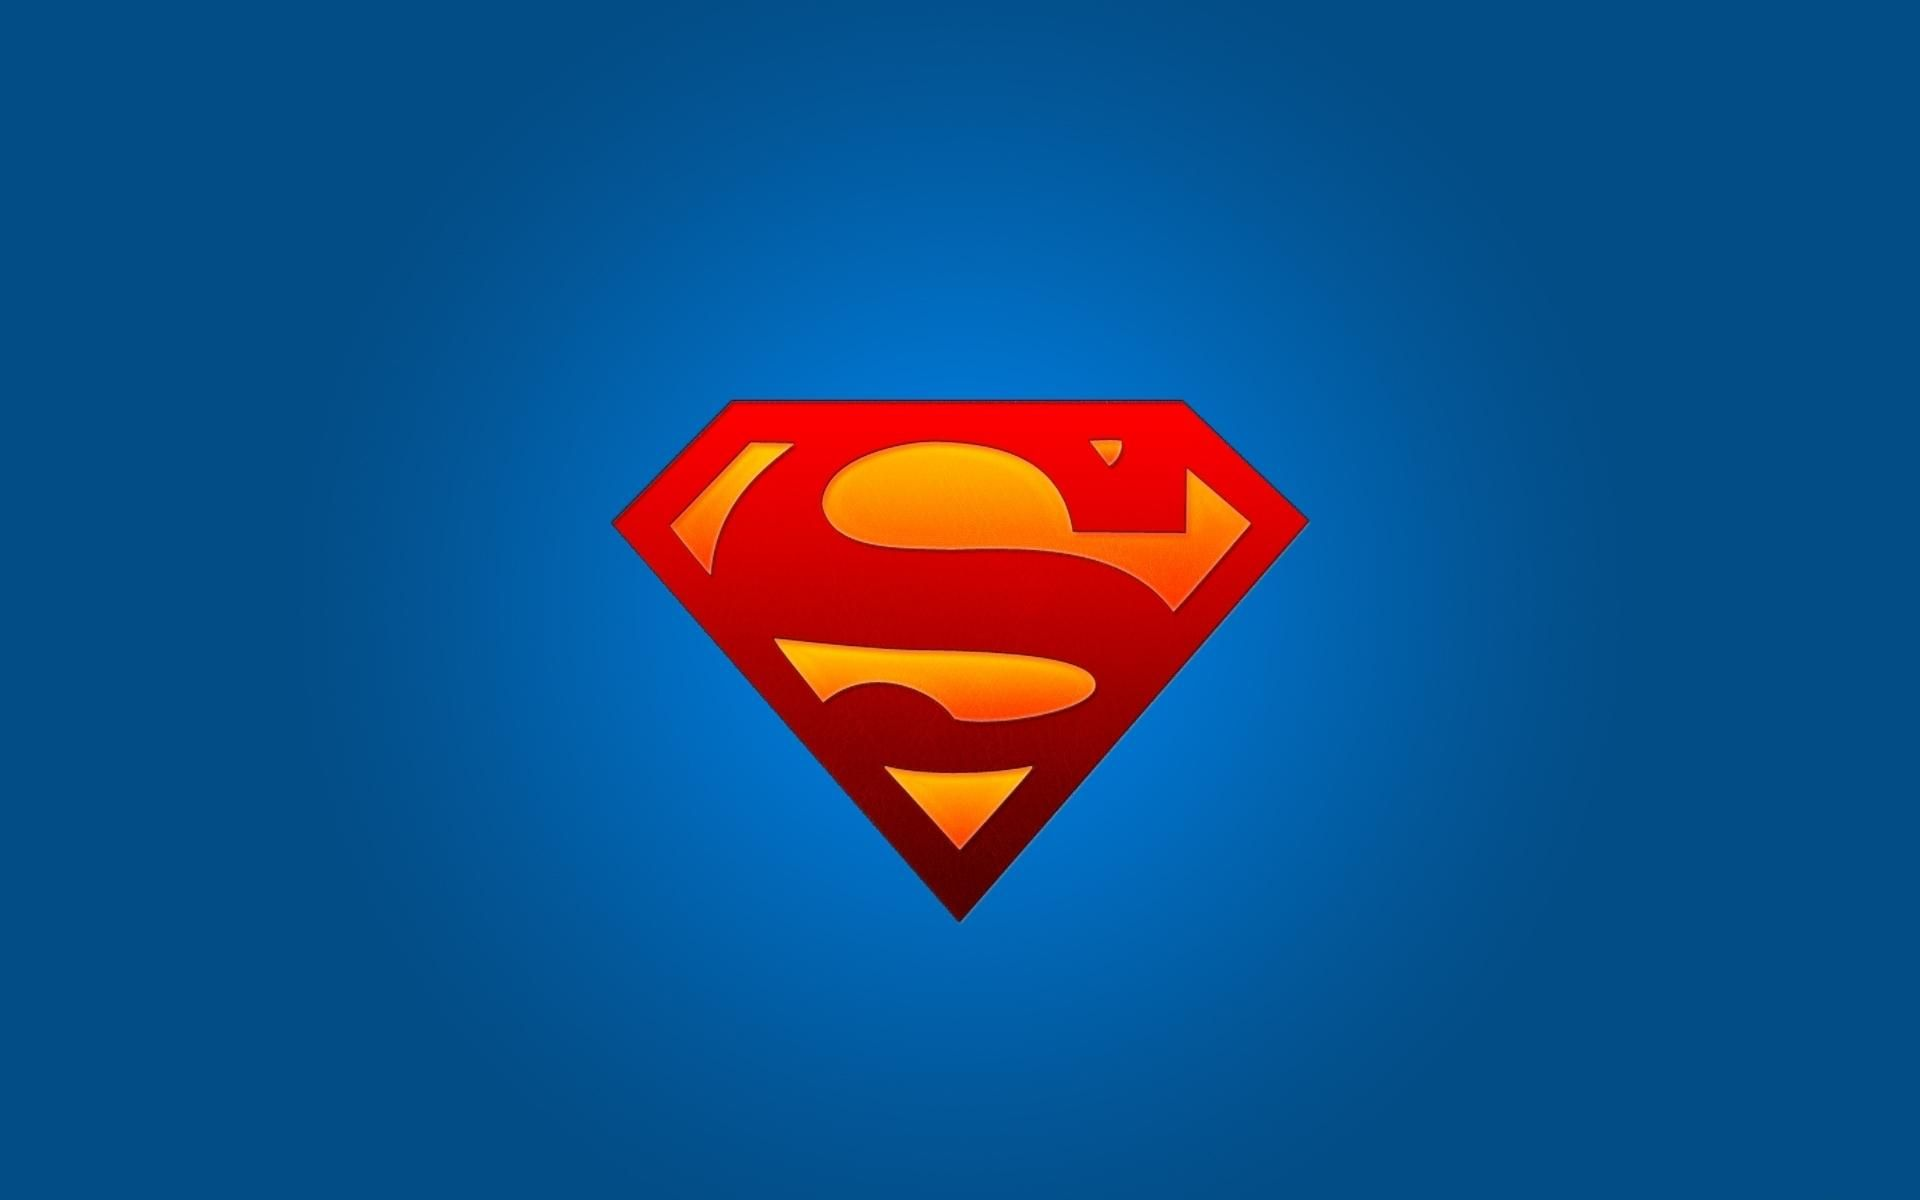 Superman Logo Hd Desktop Wallpaper High Definition Wallpapers Hd